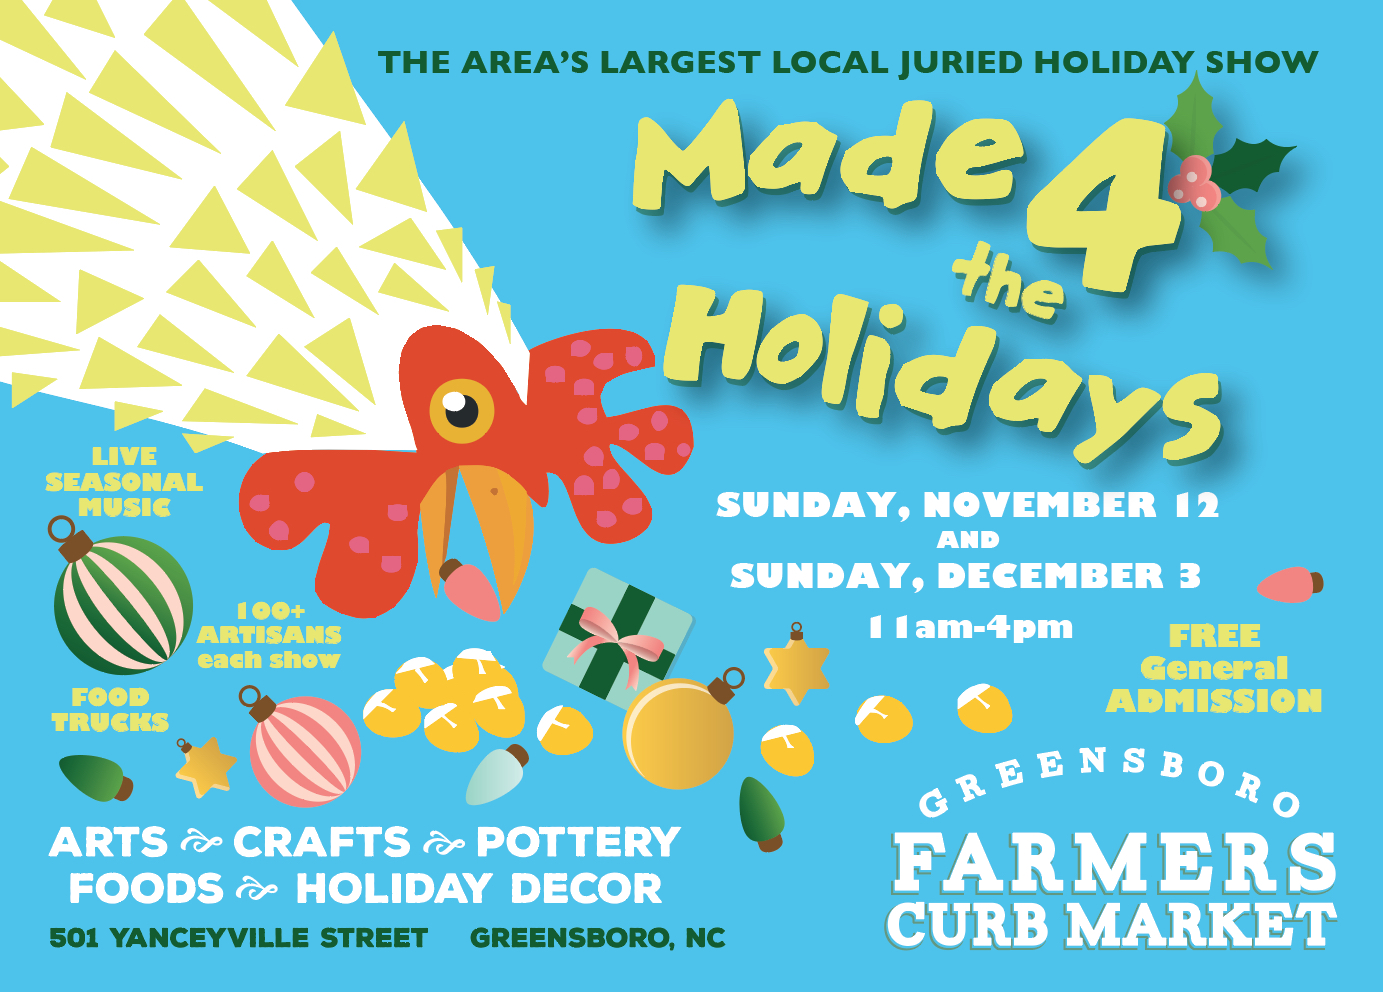 The Greensboro Farmers Curb Market Hosts  MADE 4 the Holidays Arts, Crafts, & Pottery Show Sunday December 3, 11 am-4 pm